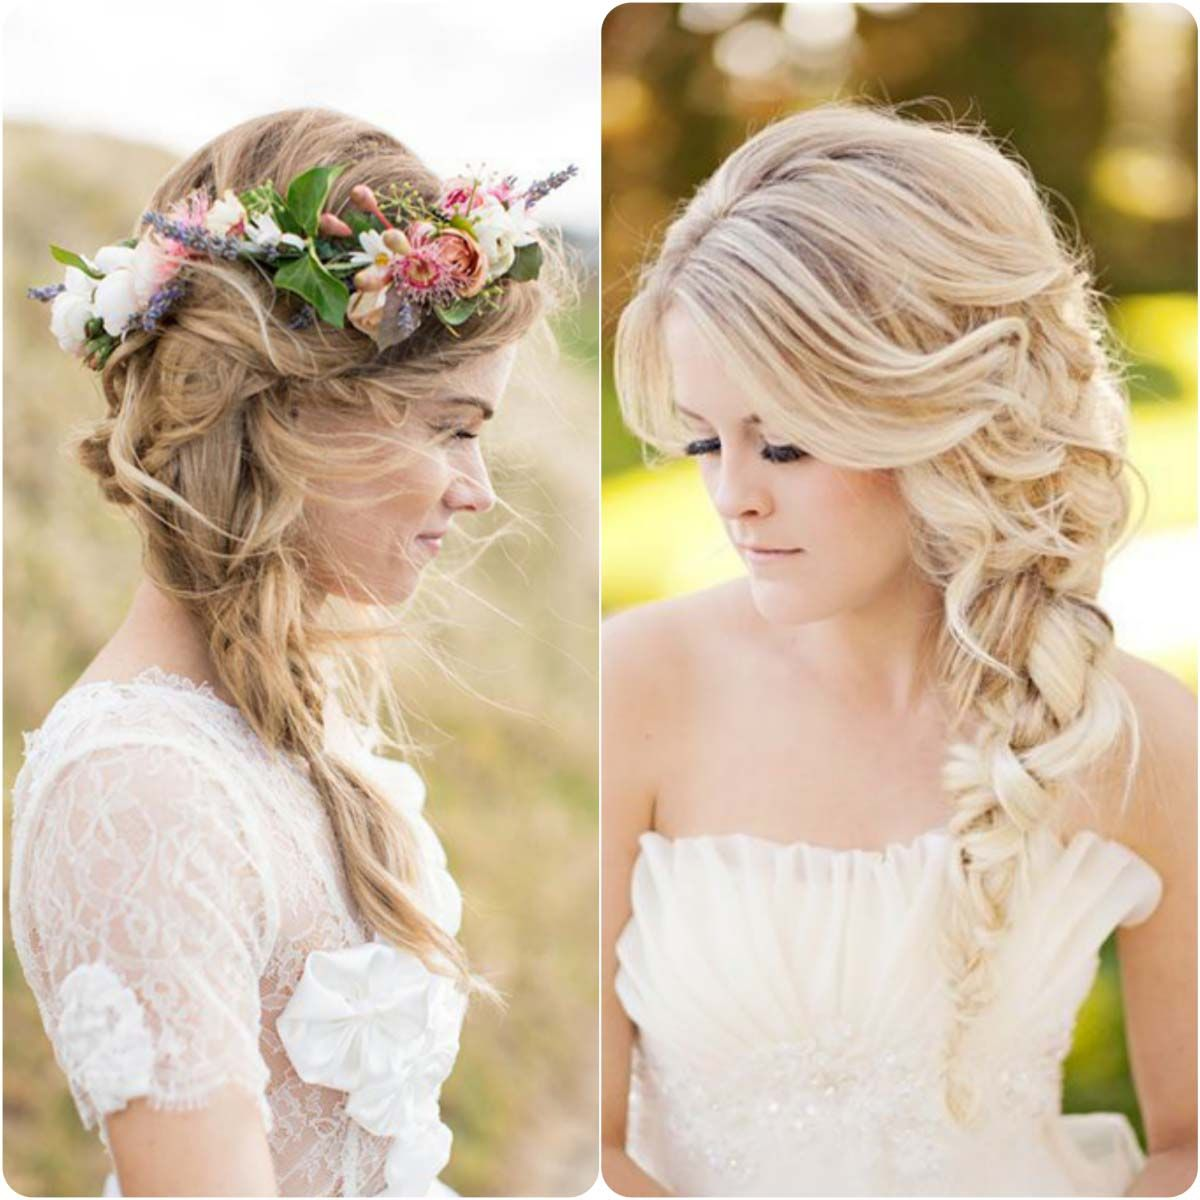 20 fishtail braided hairstyles | 2017 hairstyles | pinterest